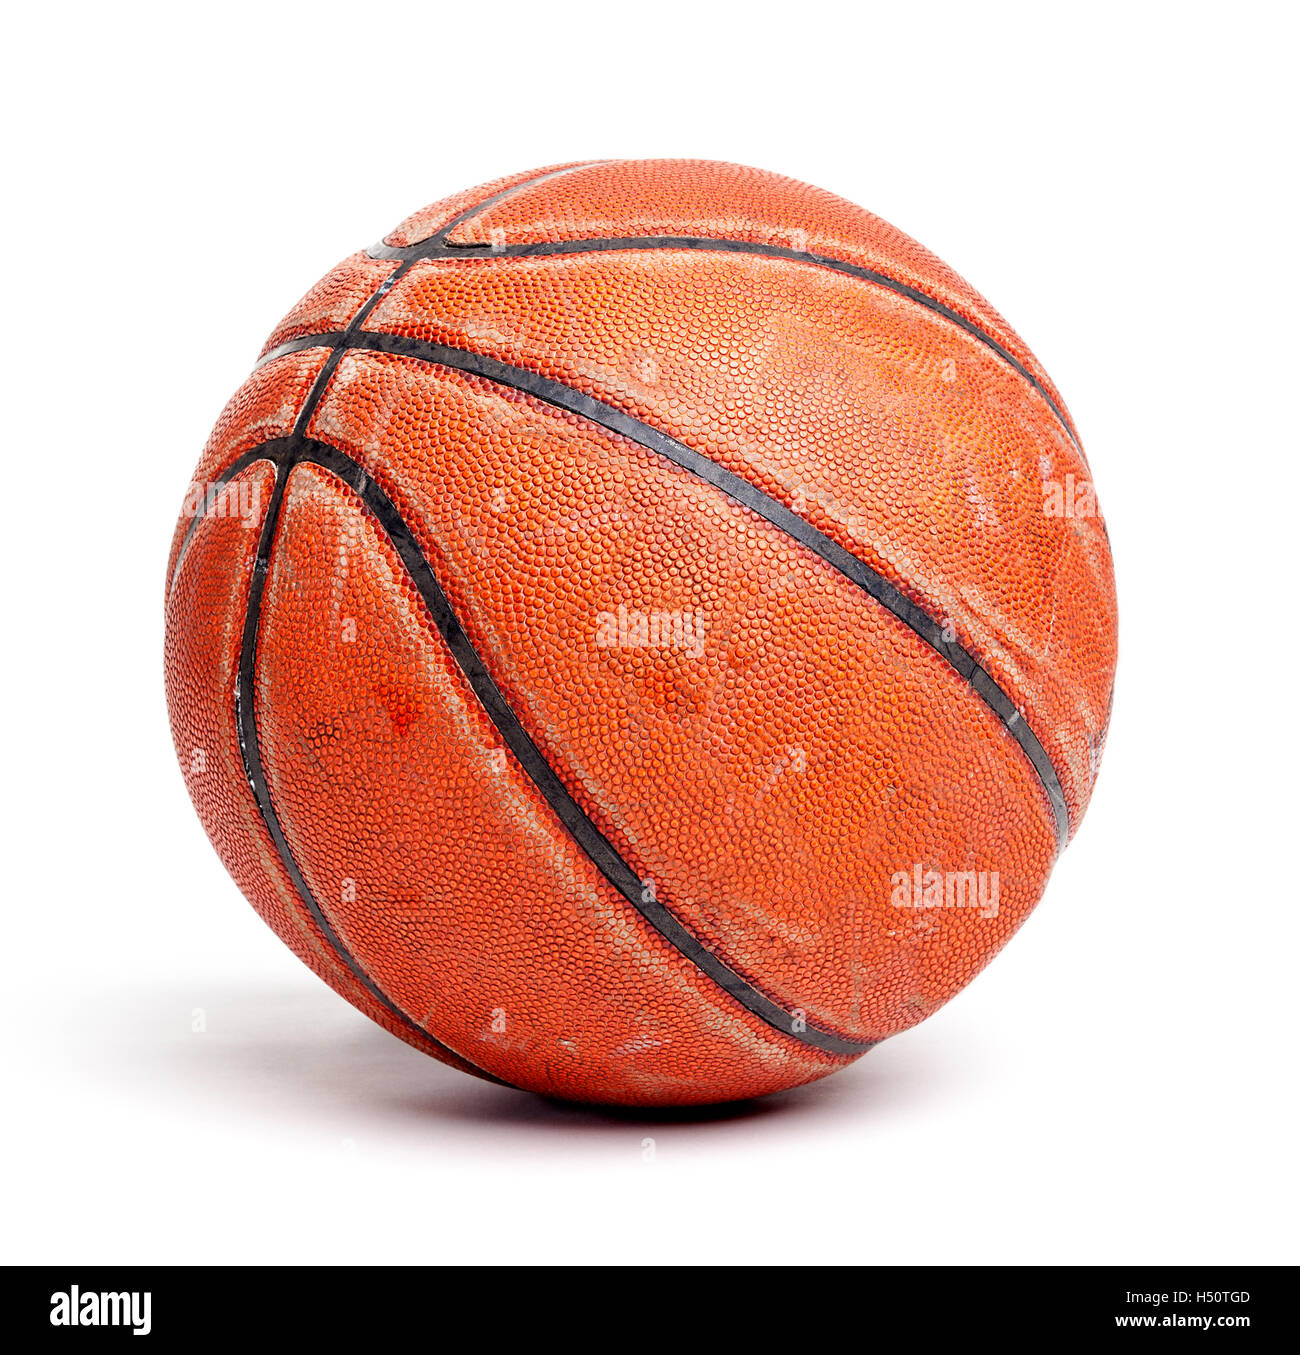 An old rugged and worn out basketball isolated on white background. - Stock Image